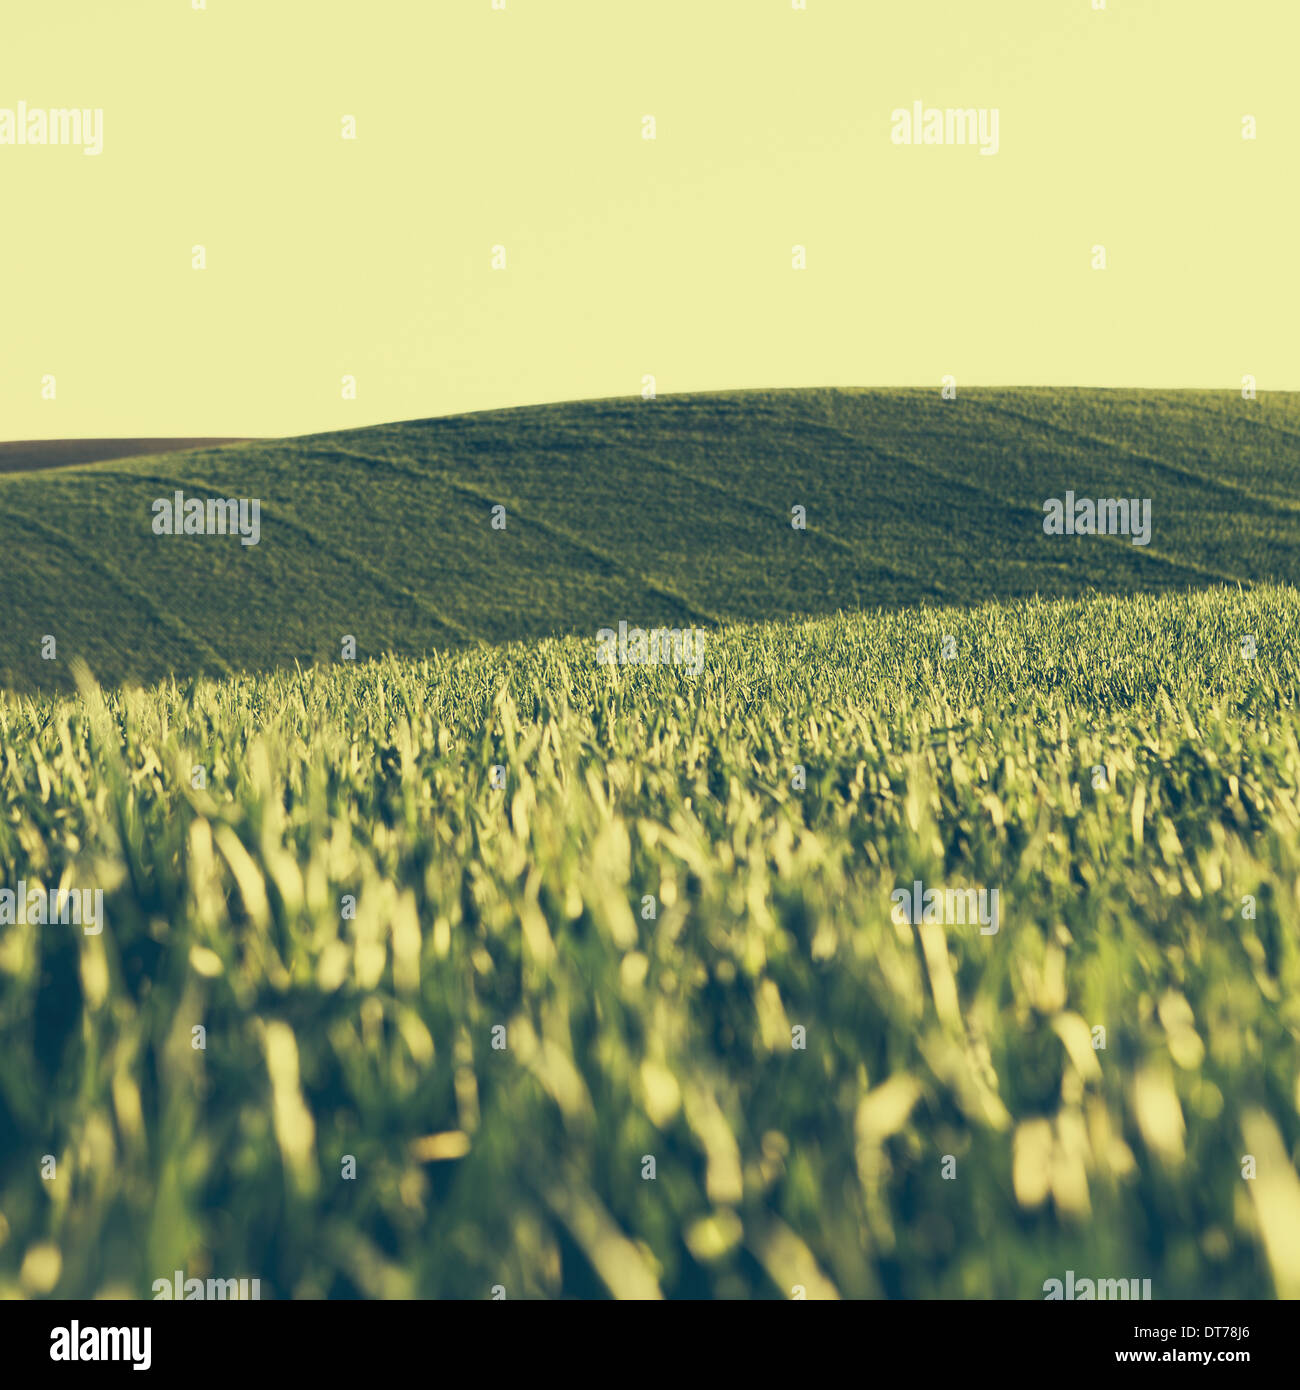 A view across the ripening stalks of a food crop, cultivated wheat growing in a field near Pullman, Washington, Stock Photo